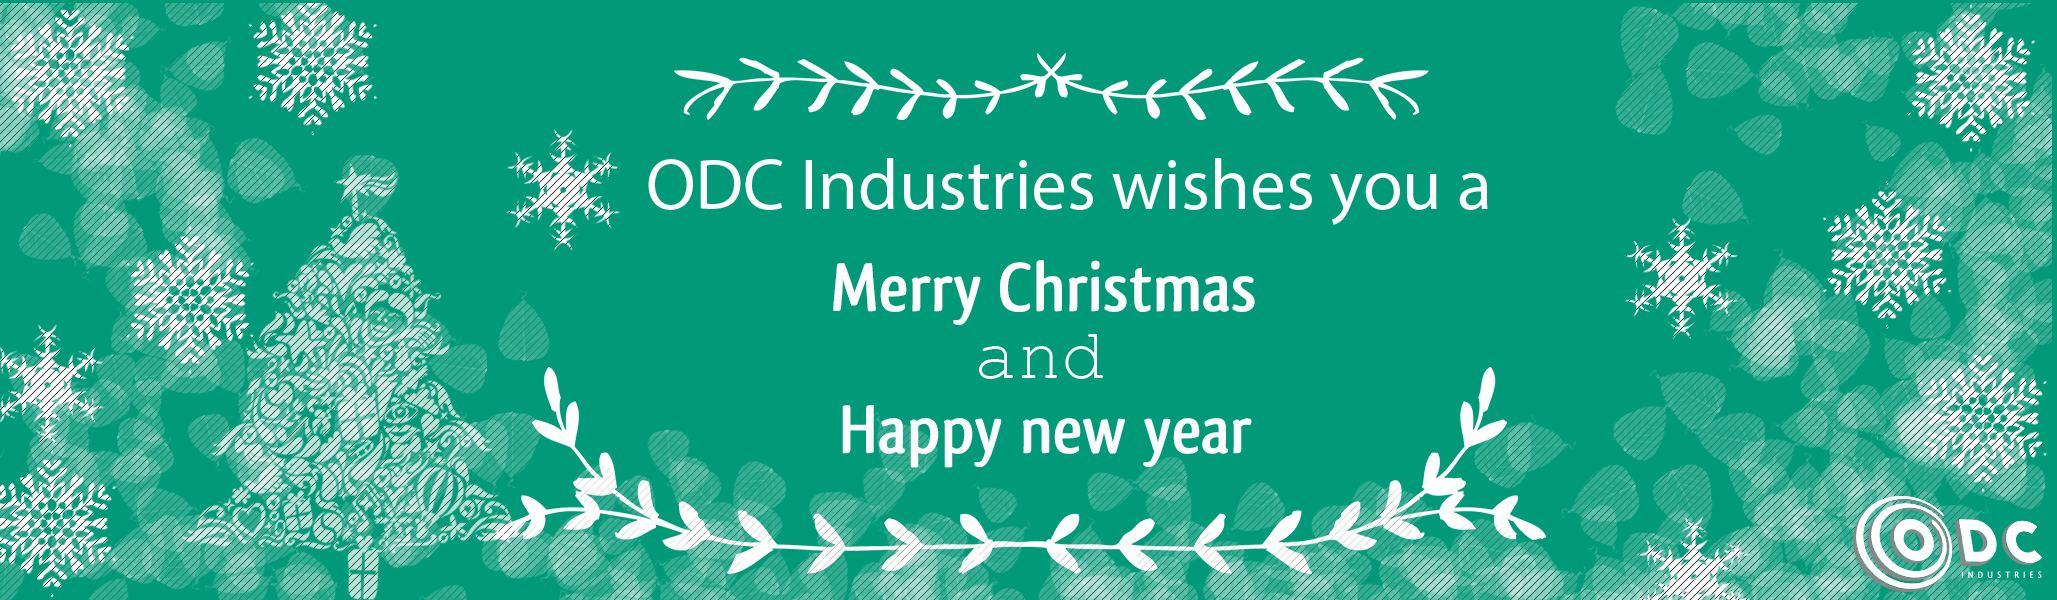 Merry christmas 2015; ODC Industries